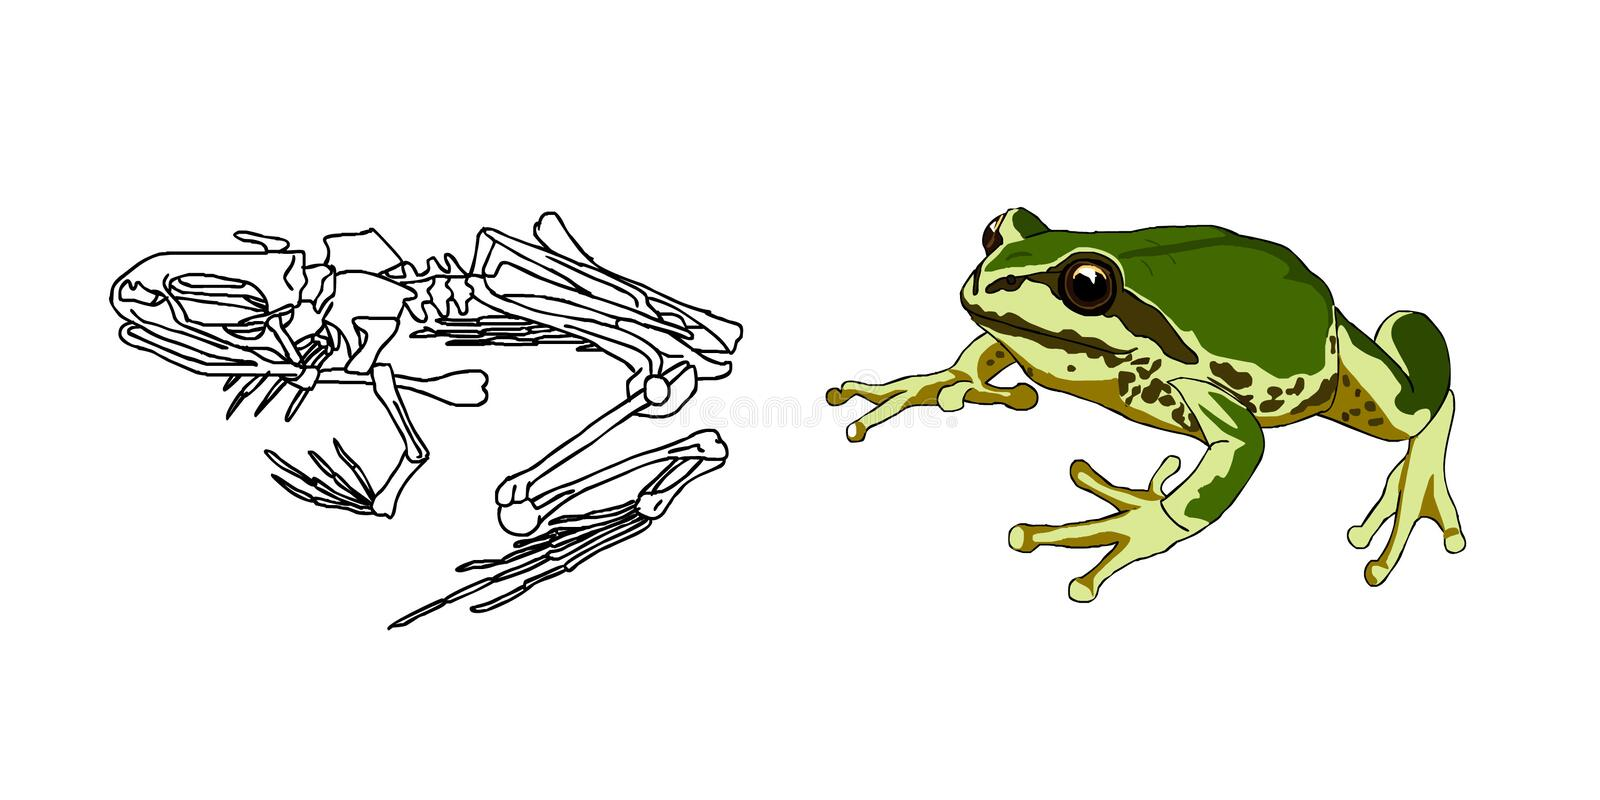 The Skeleton Of Amphibians. Toad. Frog. Anatomy. Vector. Stock ...